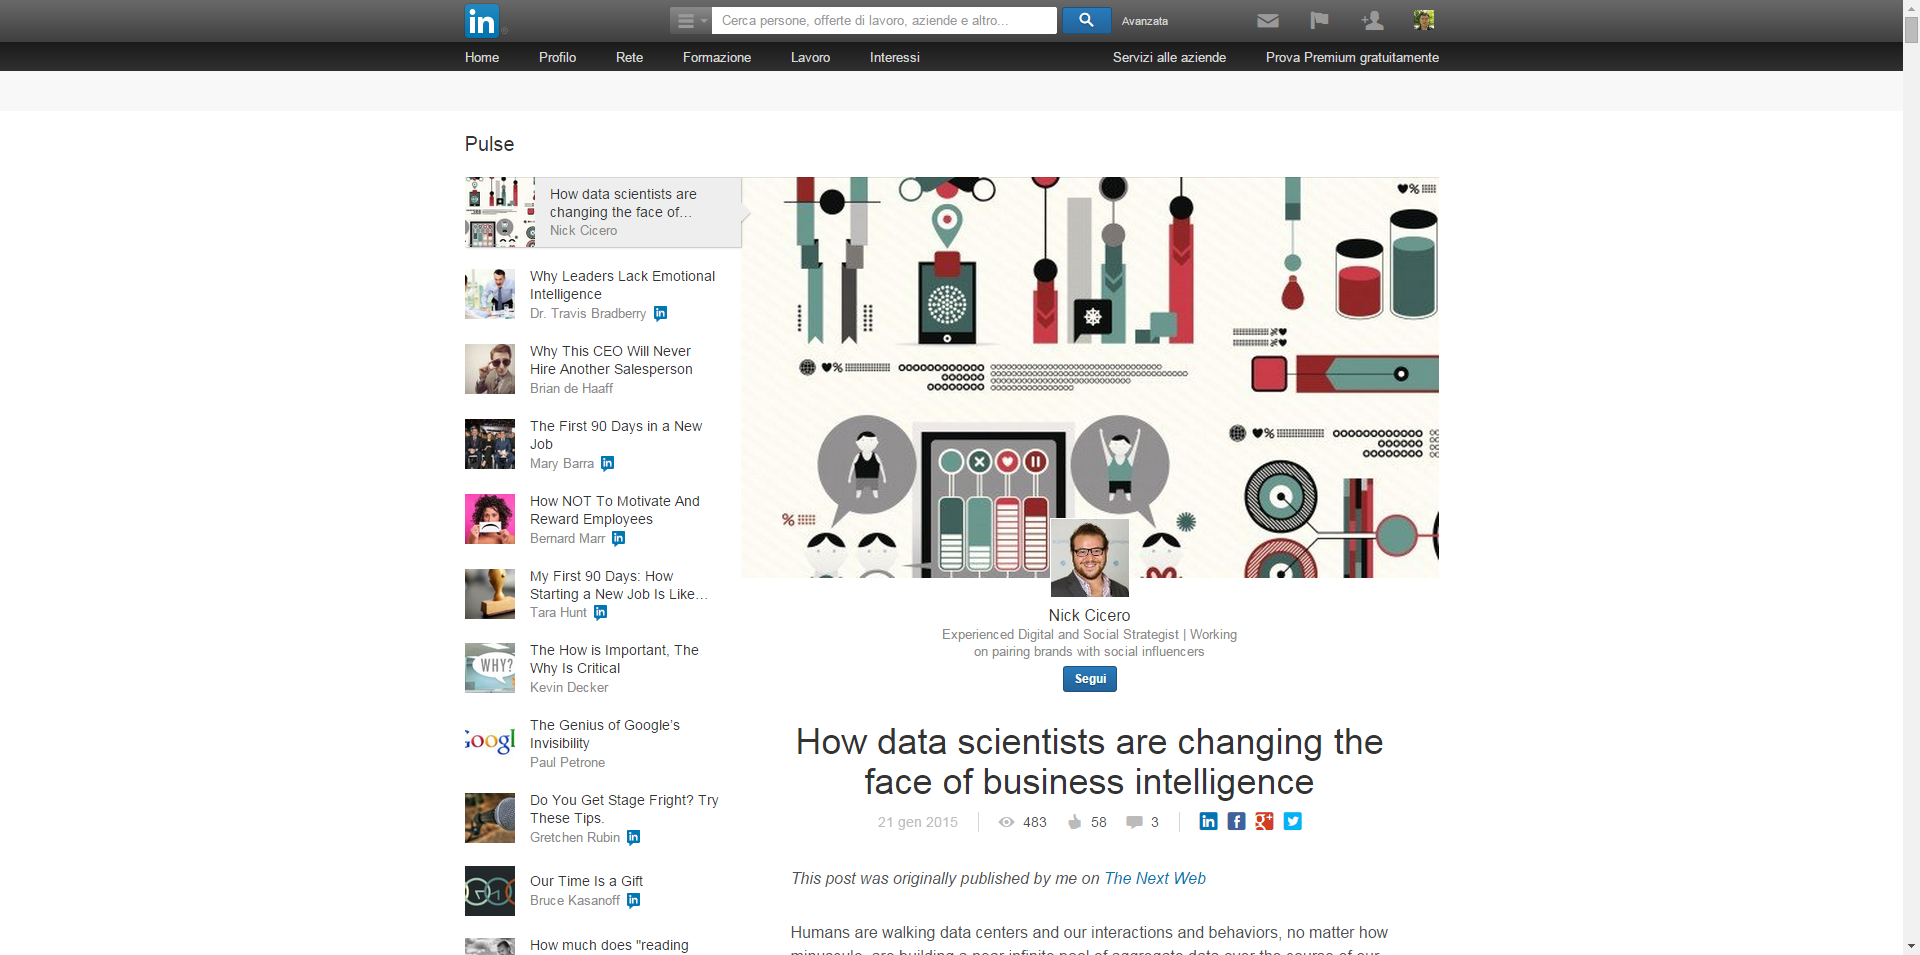 How Data Scientists Are Changing The Face Of Business Intelligence